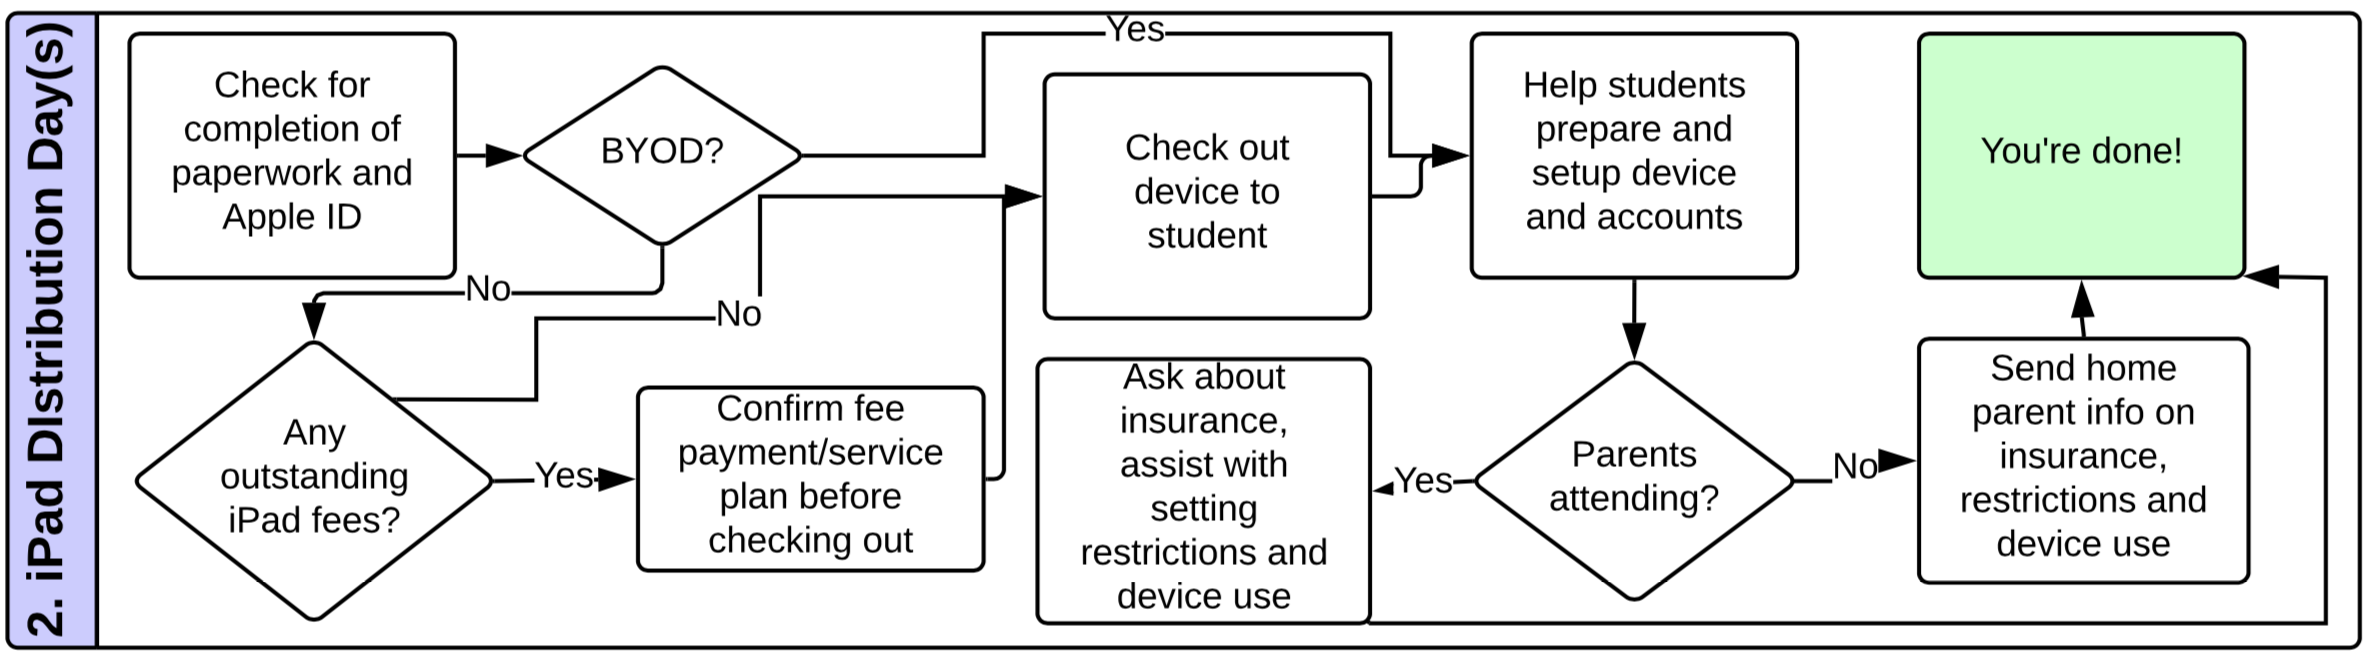 flow chart of processes